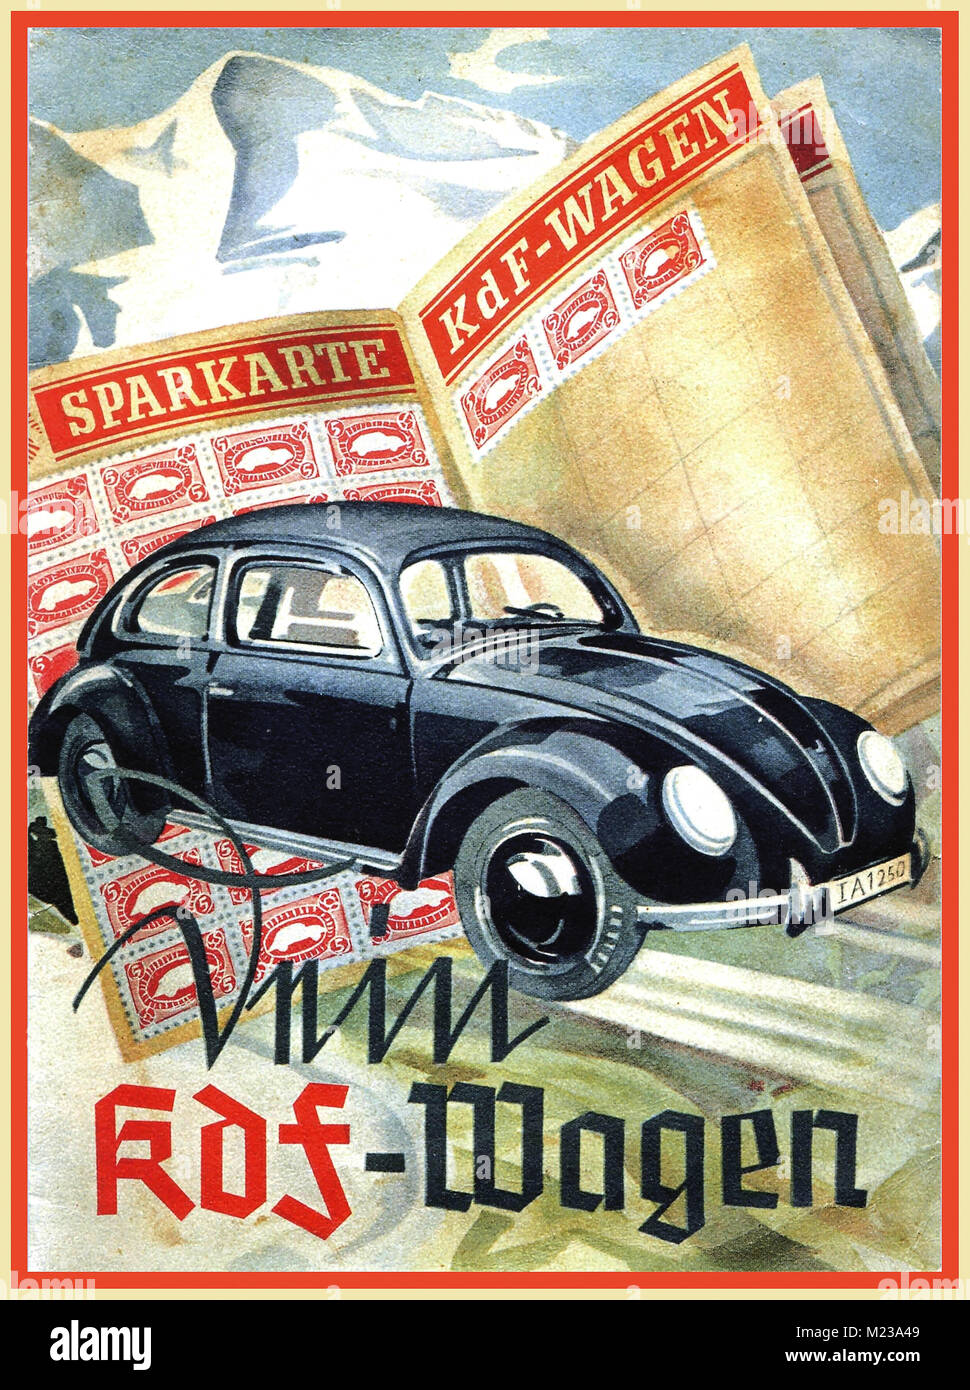 1930's KDF-Wagen Sparkarte Nazi Germany stamp purchasing scheme to buy 'The Peoples Car' a new Dr Porsche designed - Stock Image